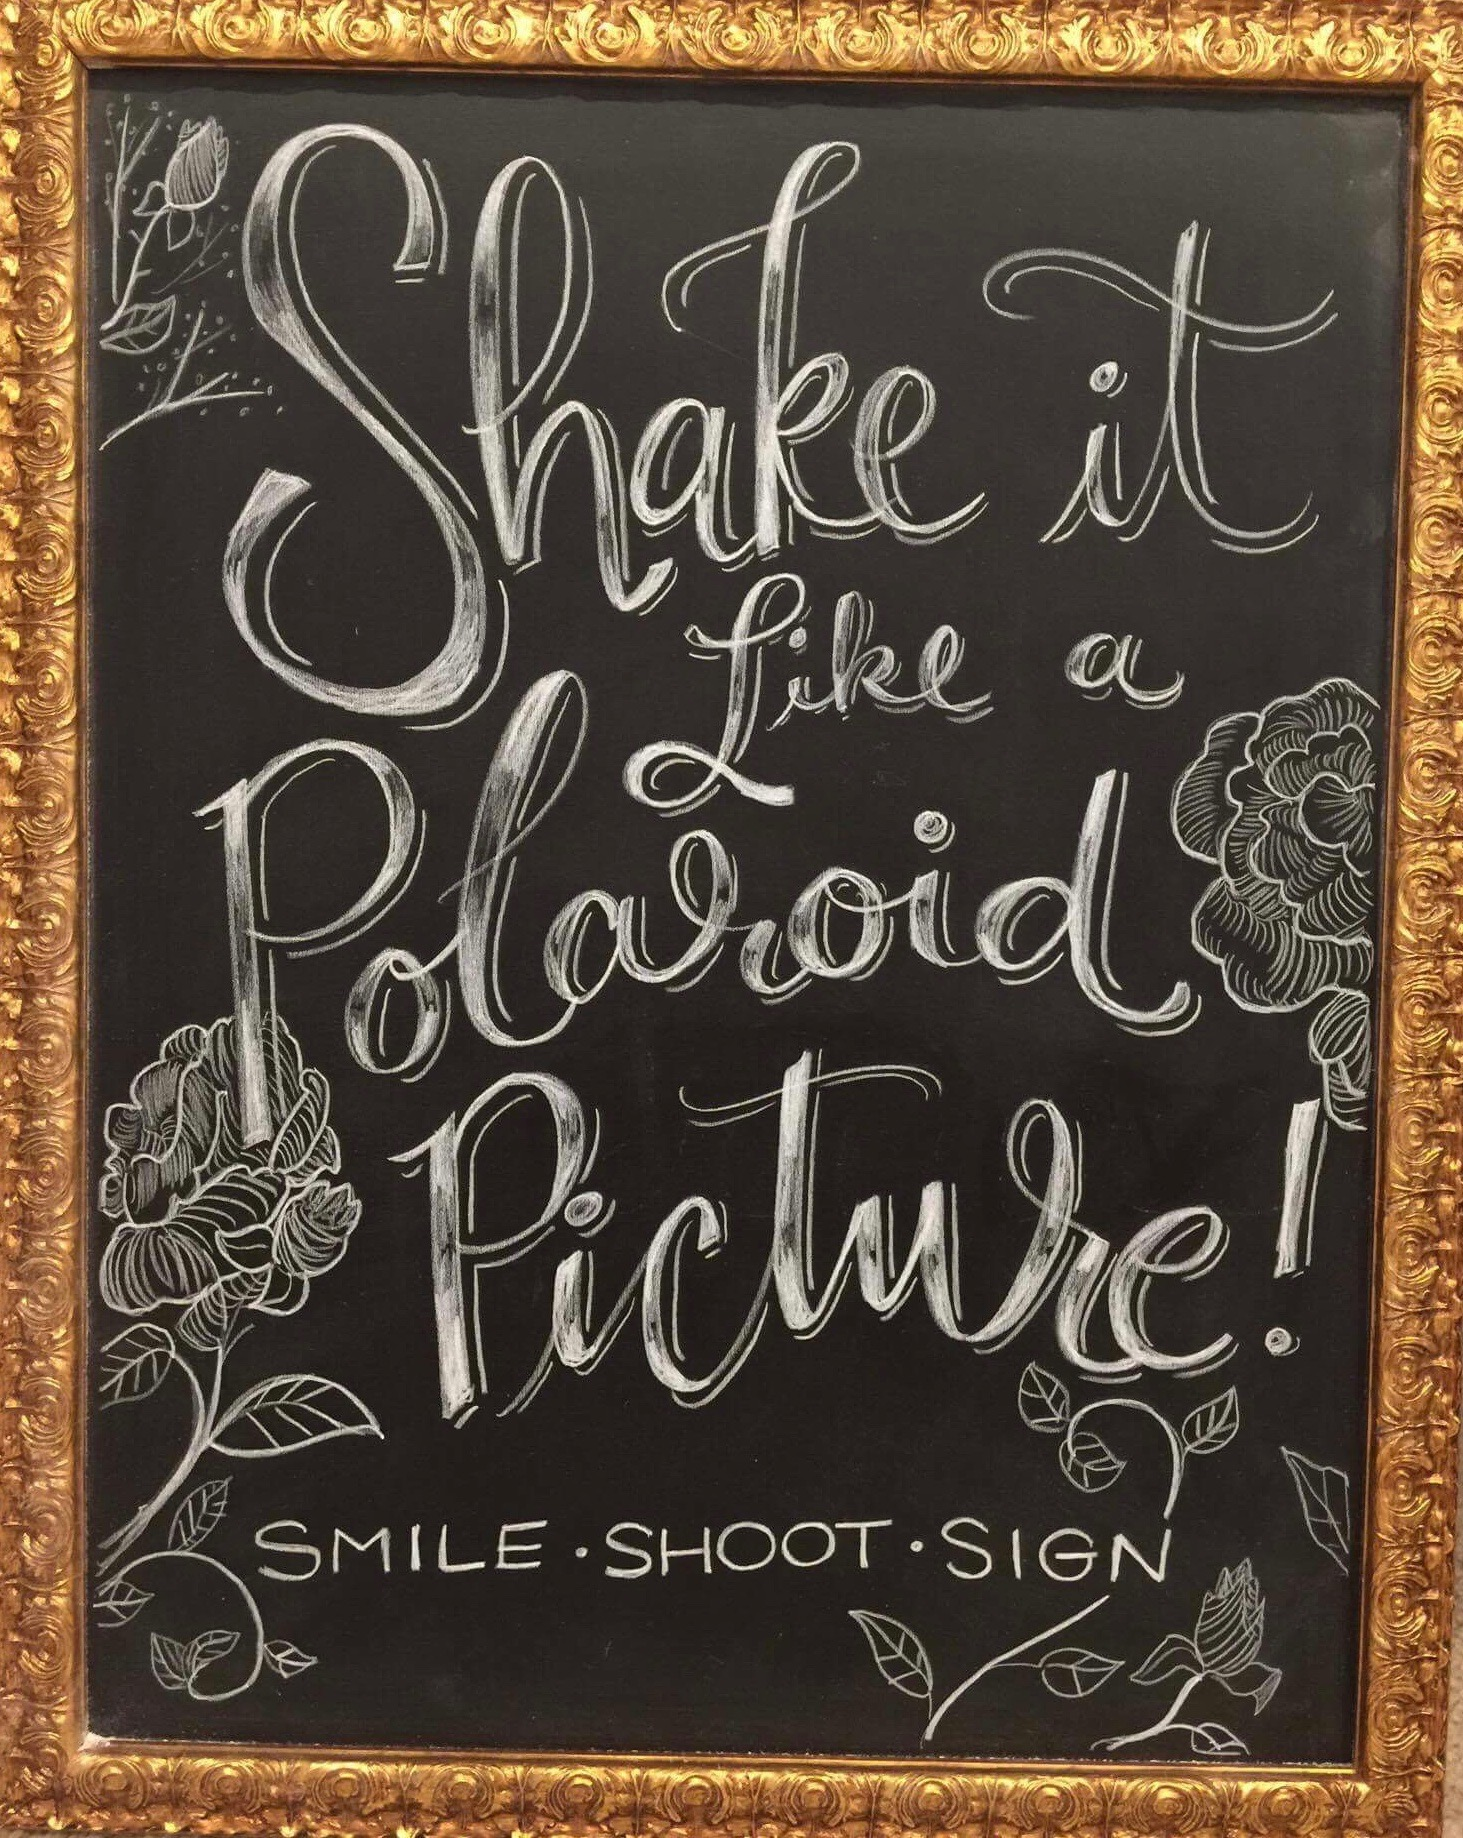 Wedding Chalk Art Signs - Shake it like a polaroid picture